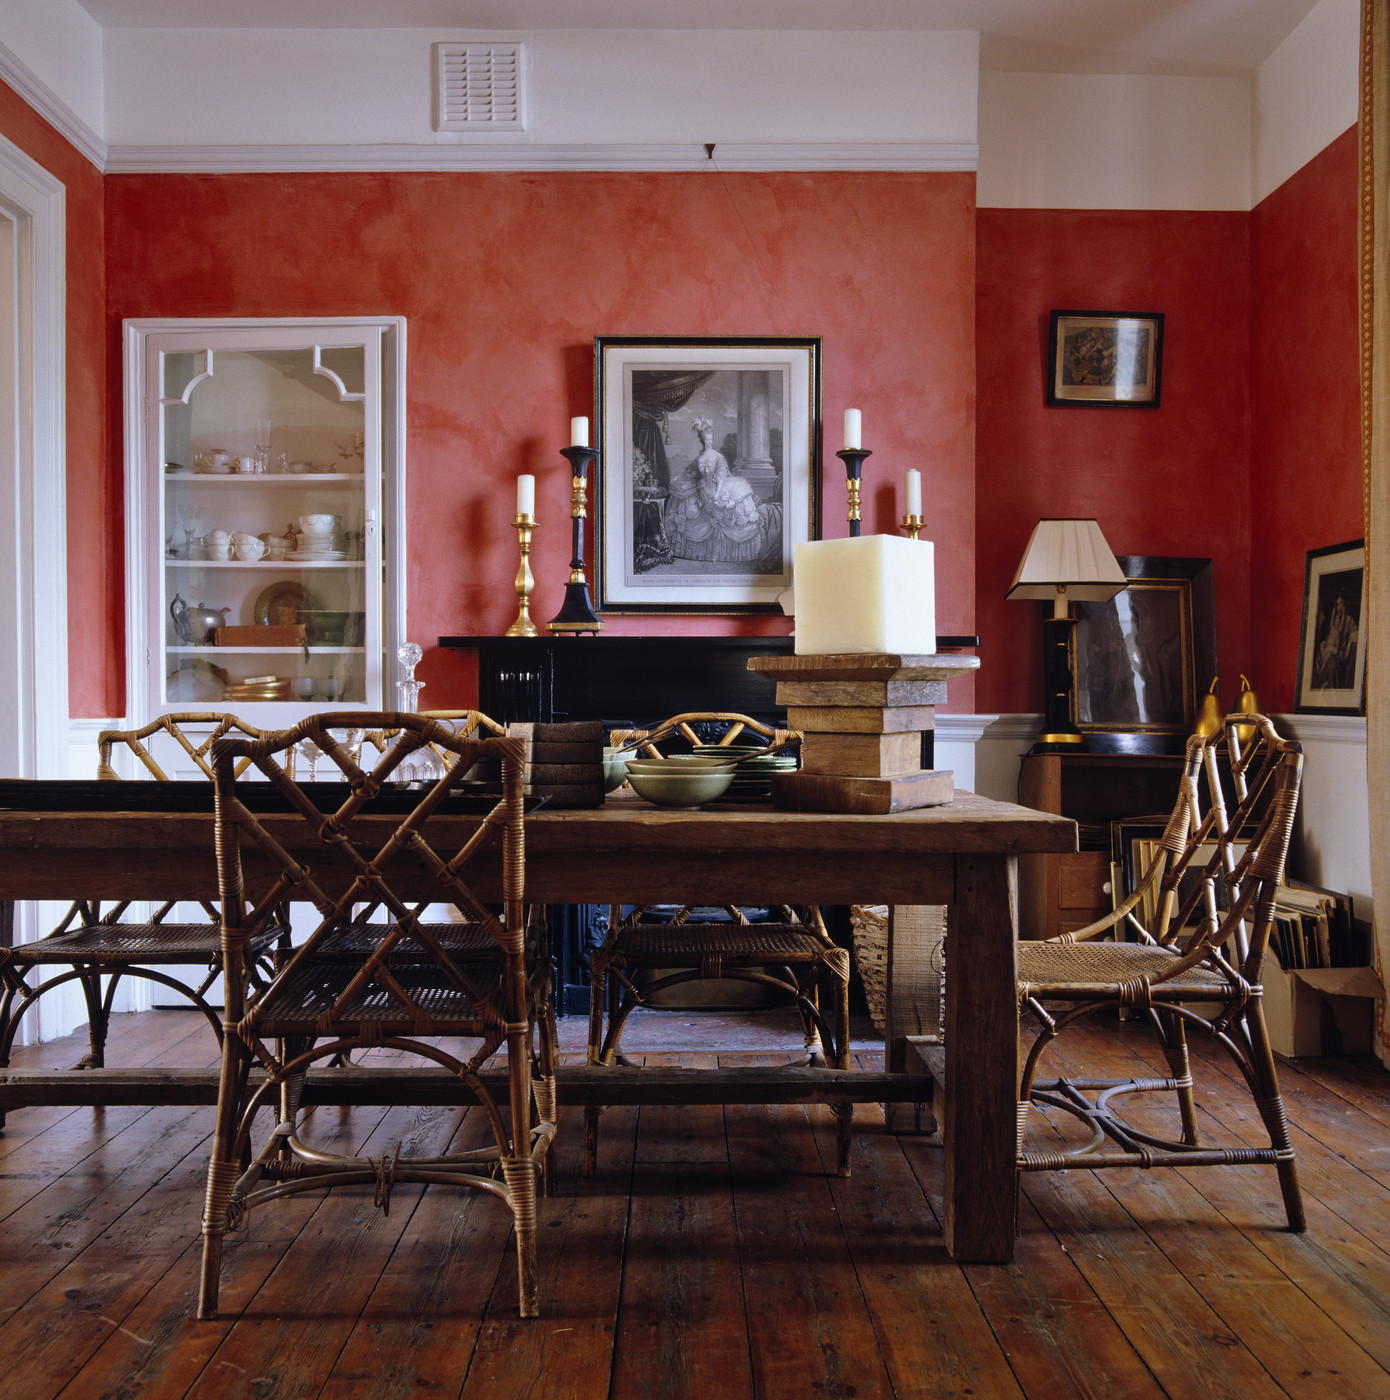 country dining room photos 83 of 184. Black Bedroom Furniture Sets. Home Design Ideas